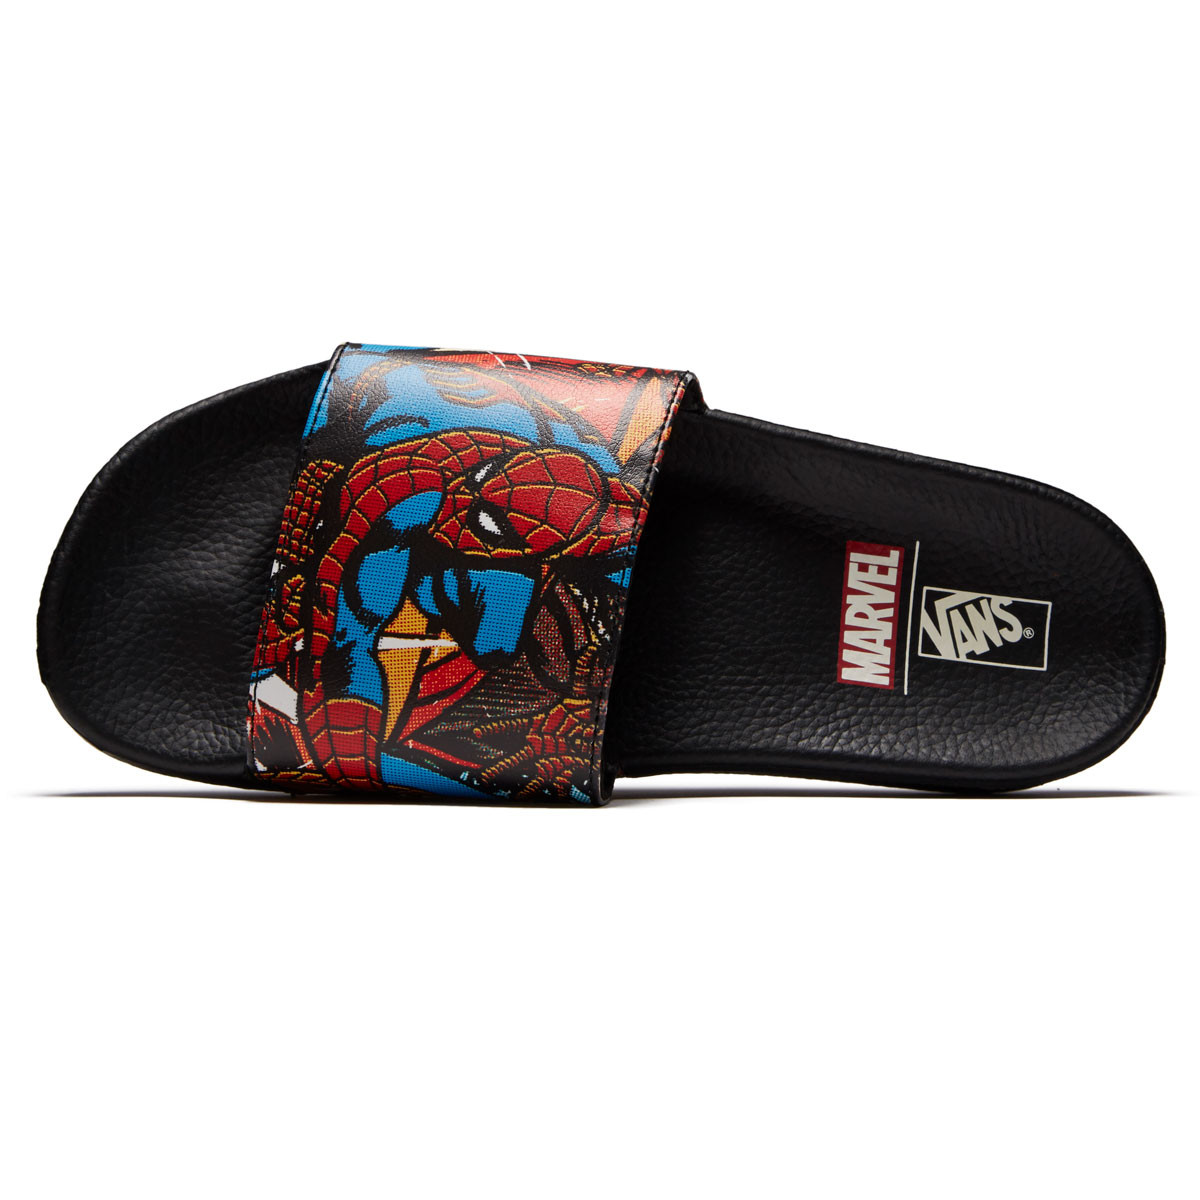 dbe0b6b768 Vans X Marvel Slide On Shoes - Spiderman Black - 10.0